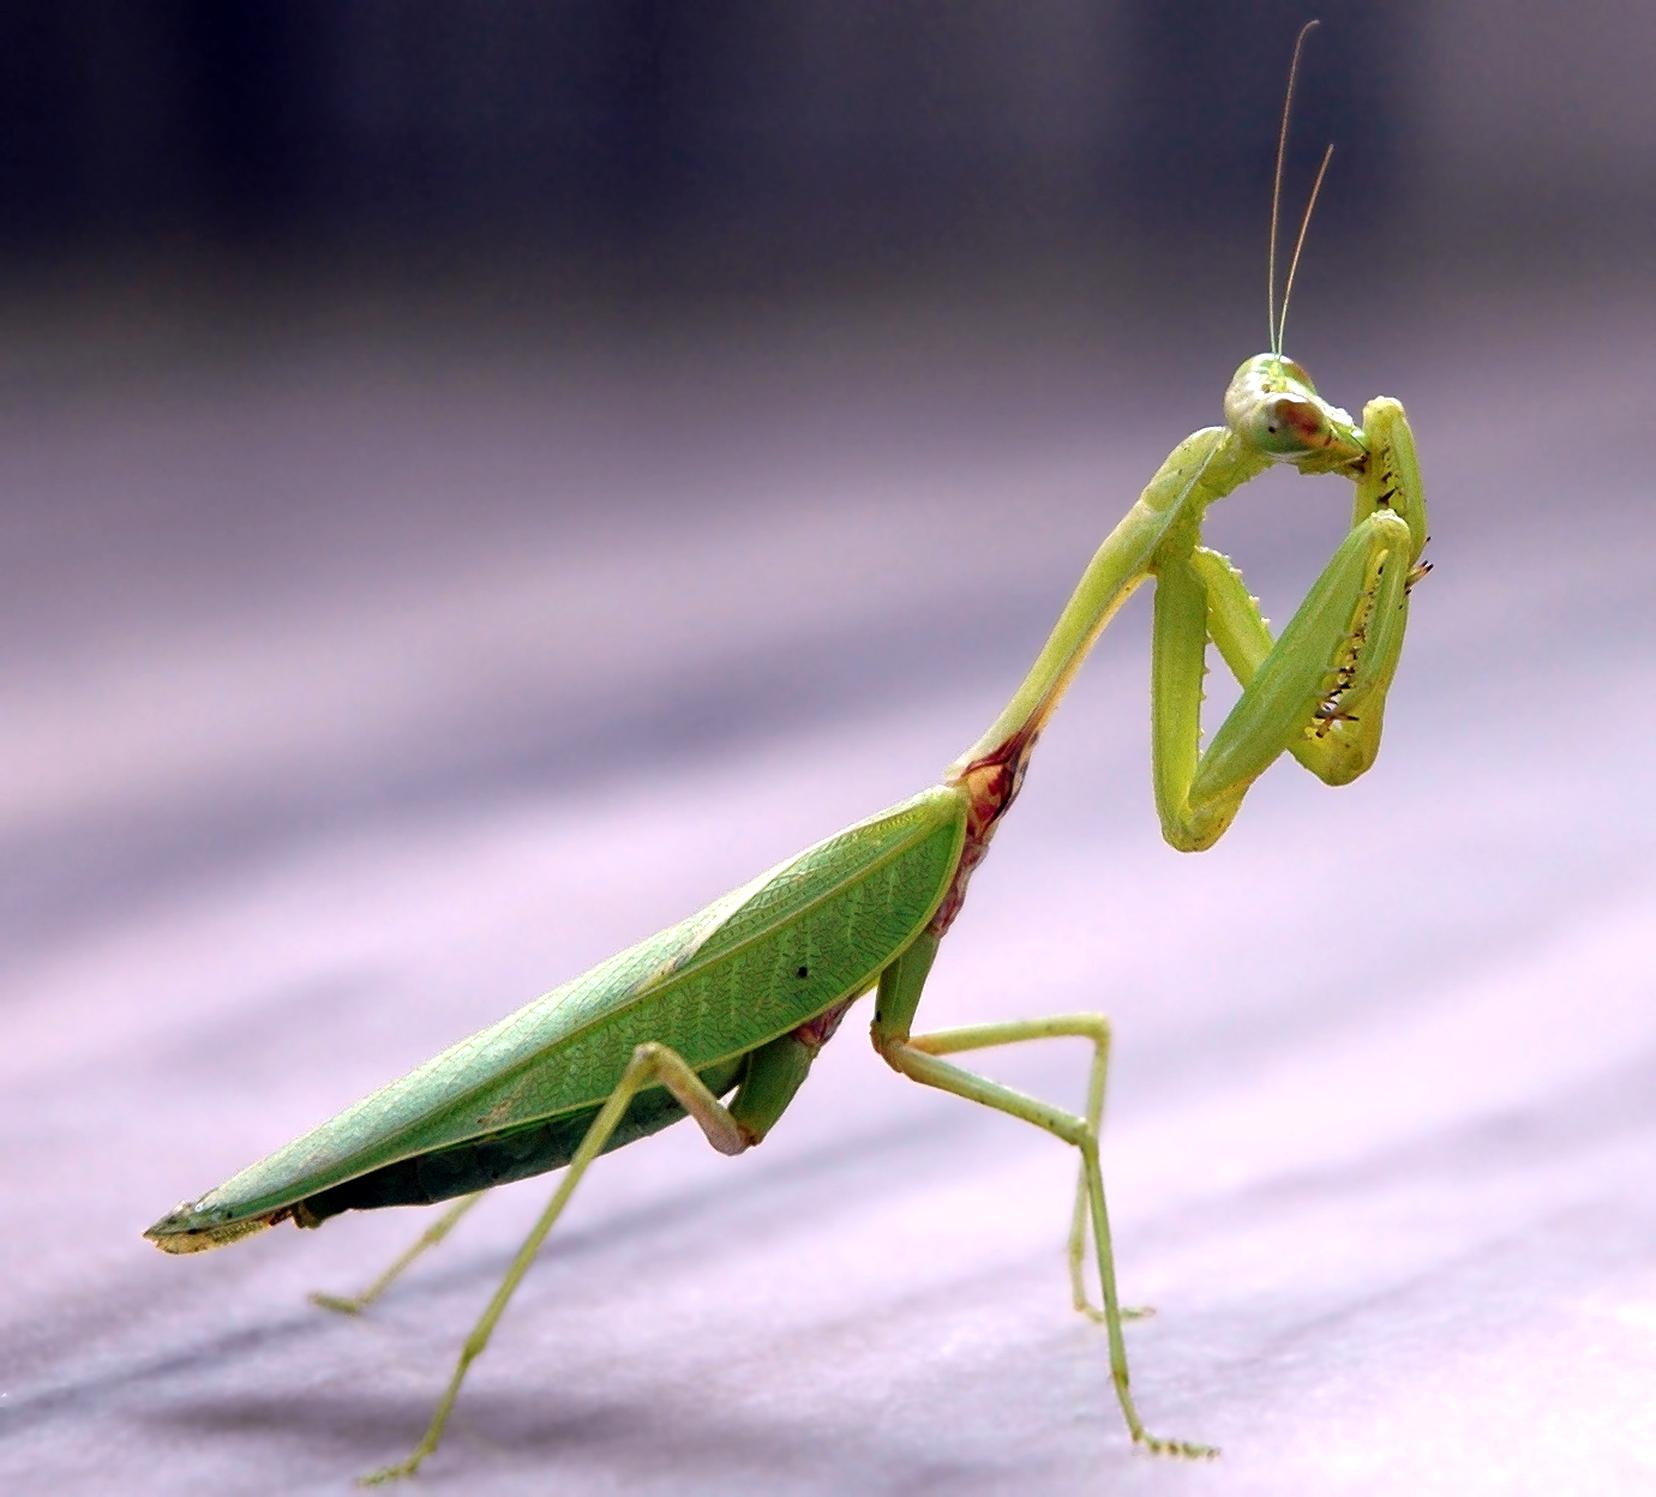 Praying Mantis For Sale Only 2 Left At 65